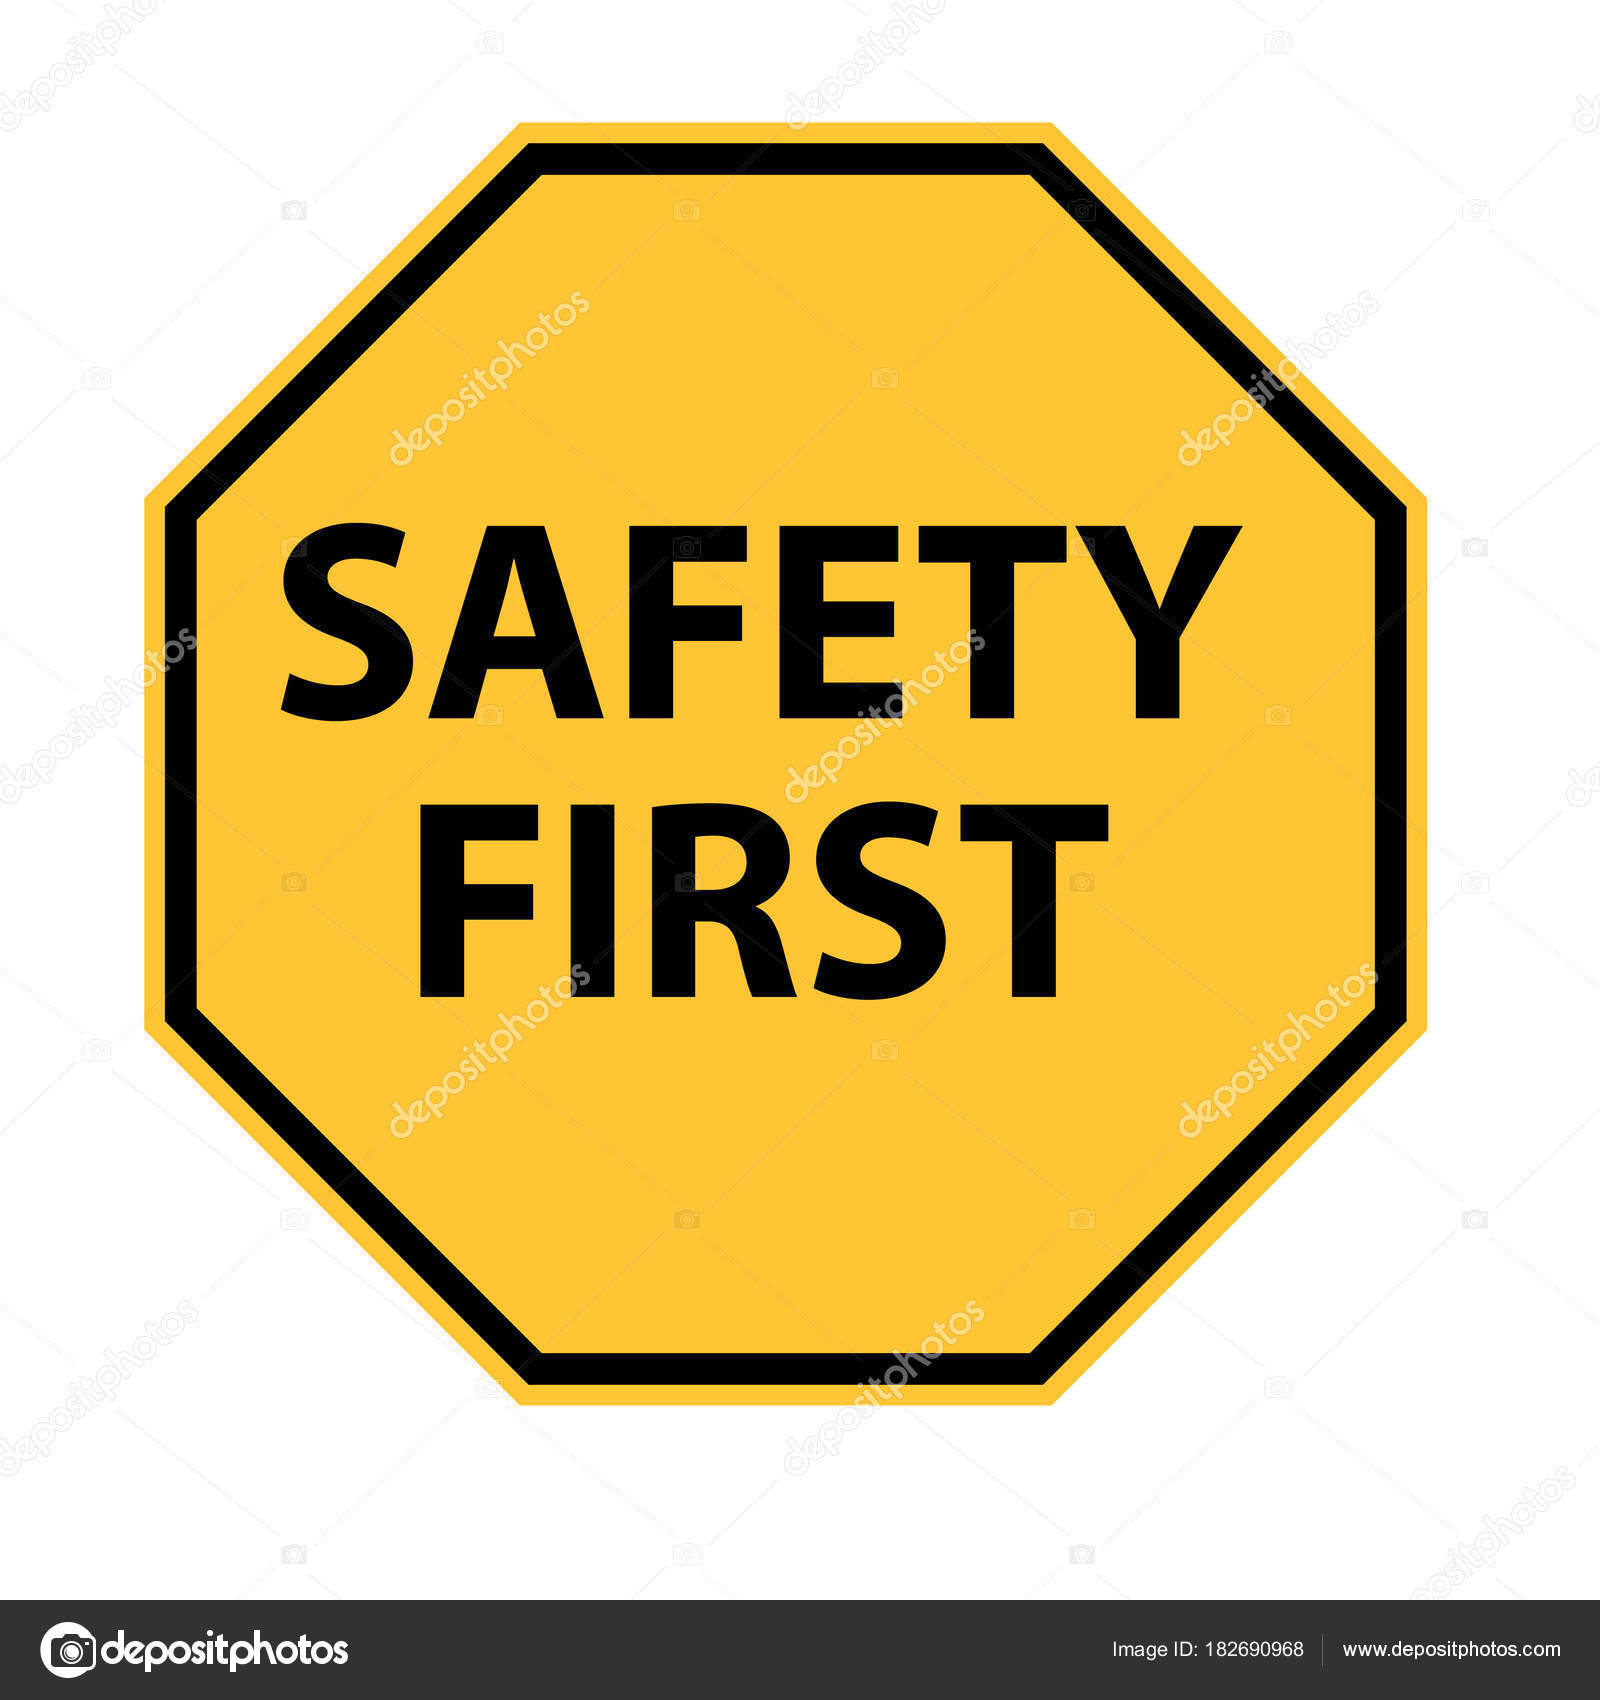 Safety first logo on white background. safety first symbol.